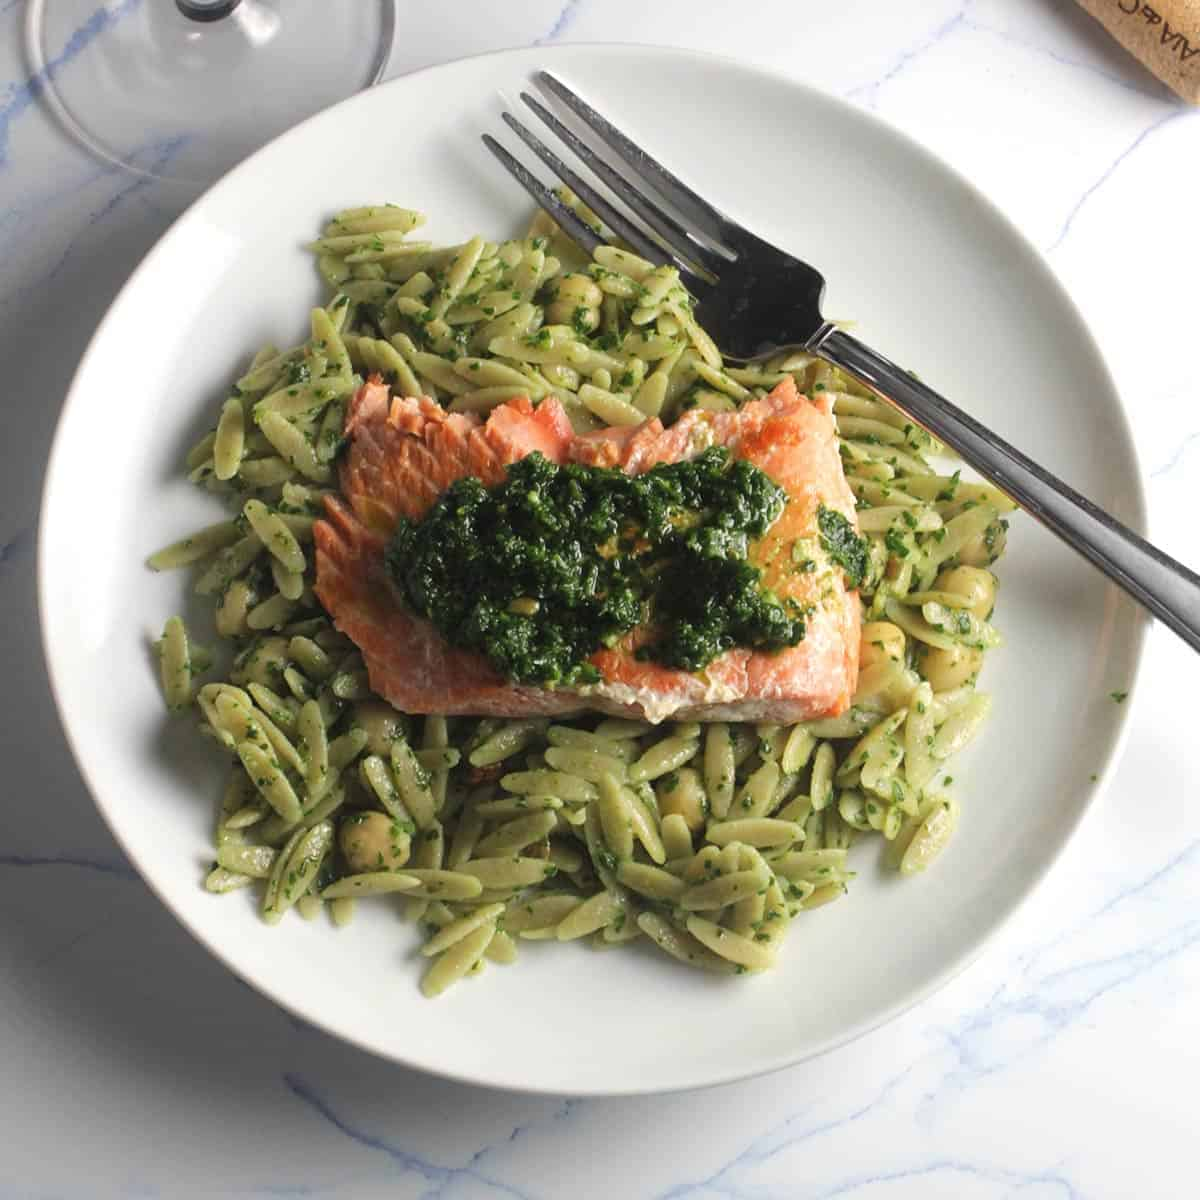 plate of orzo with salmon on top.